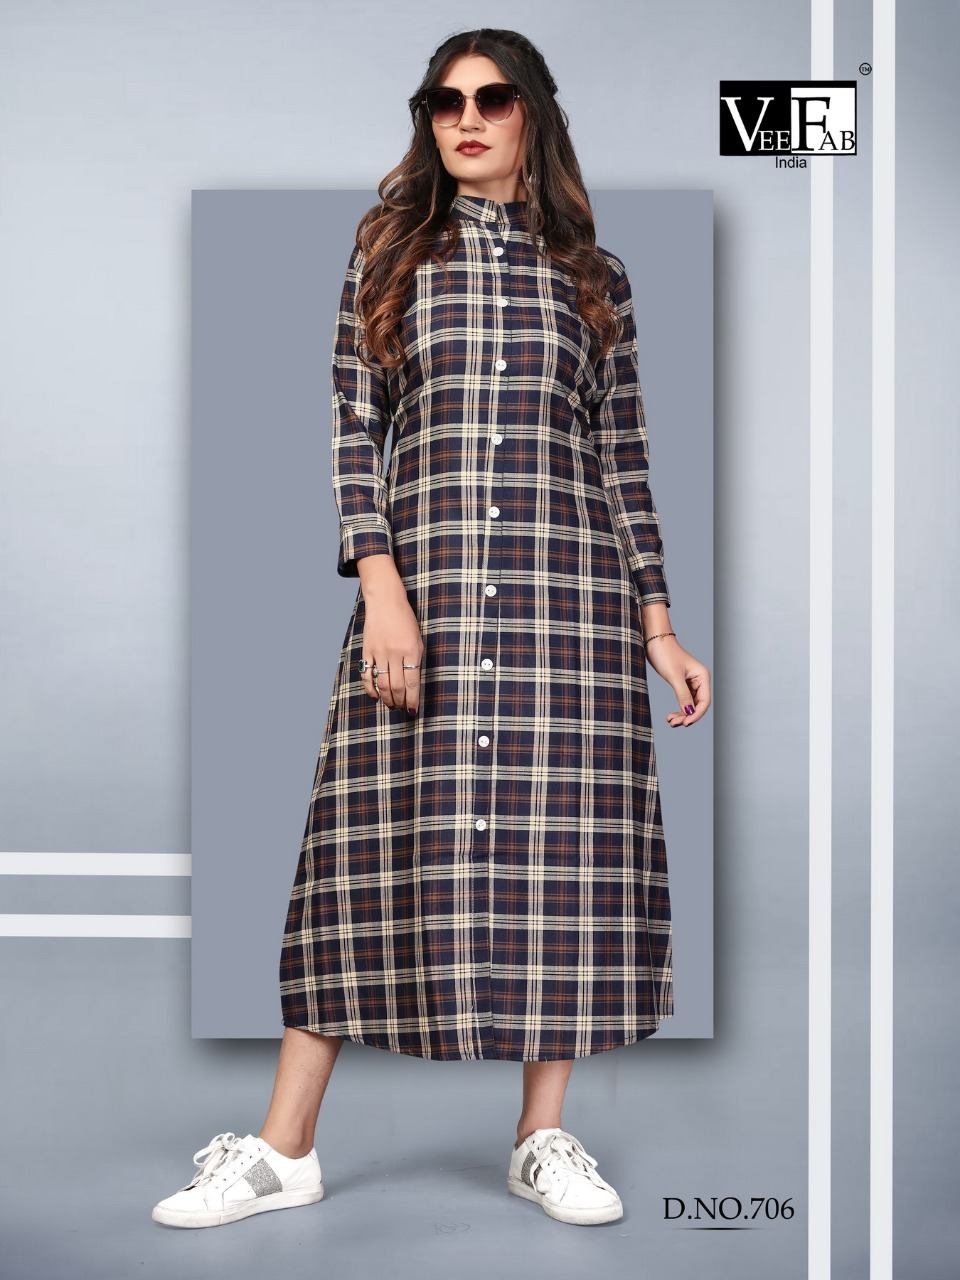 Vee Fab Winter Grace Vol 7 Kurti Wholesale Catalog 6 Pcs 10 - Vee Fab Winter Grace Vol 7 Kurti Wholesale Catalog 6 Pcs